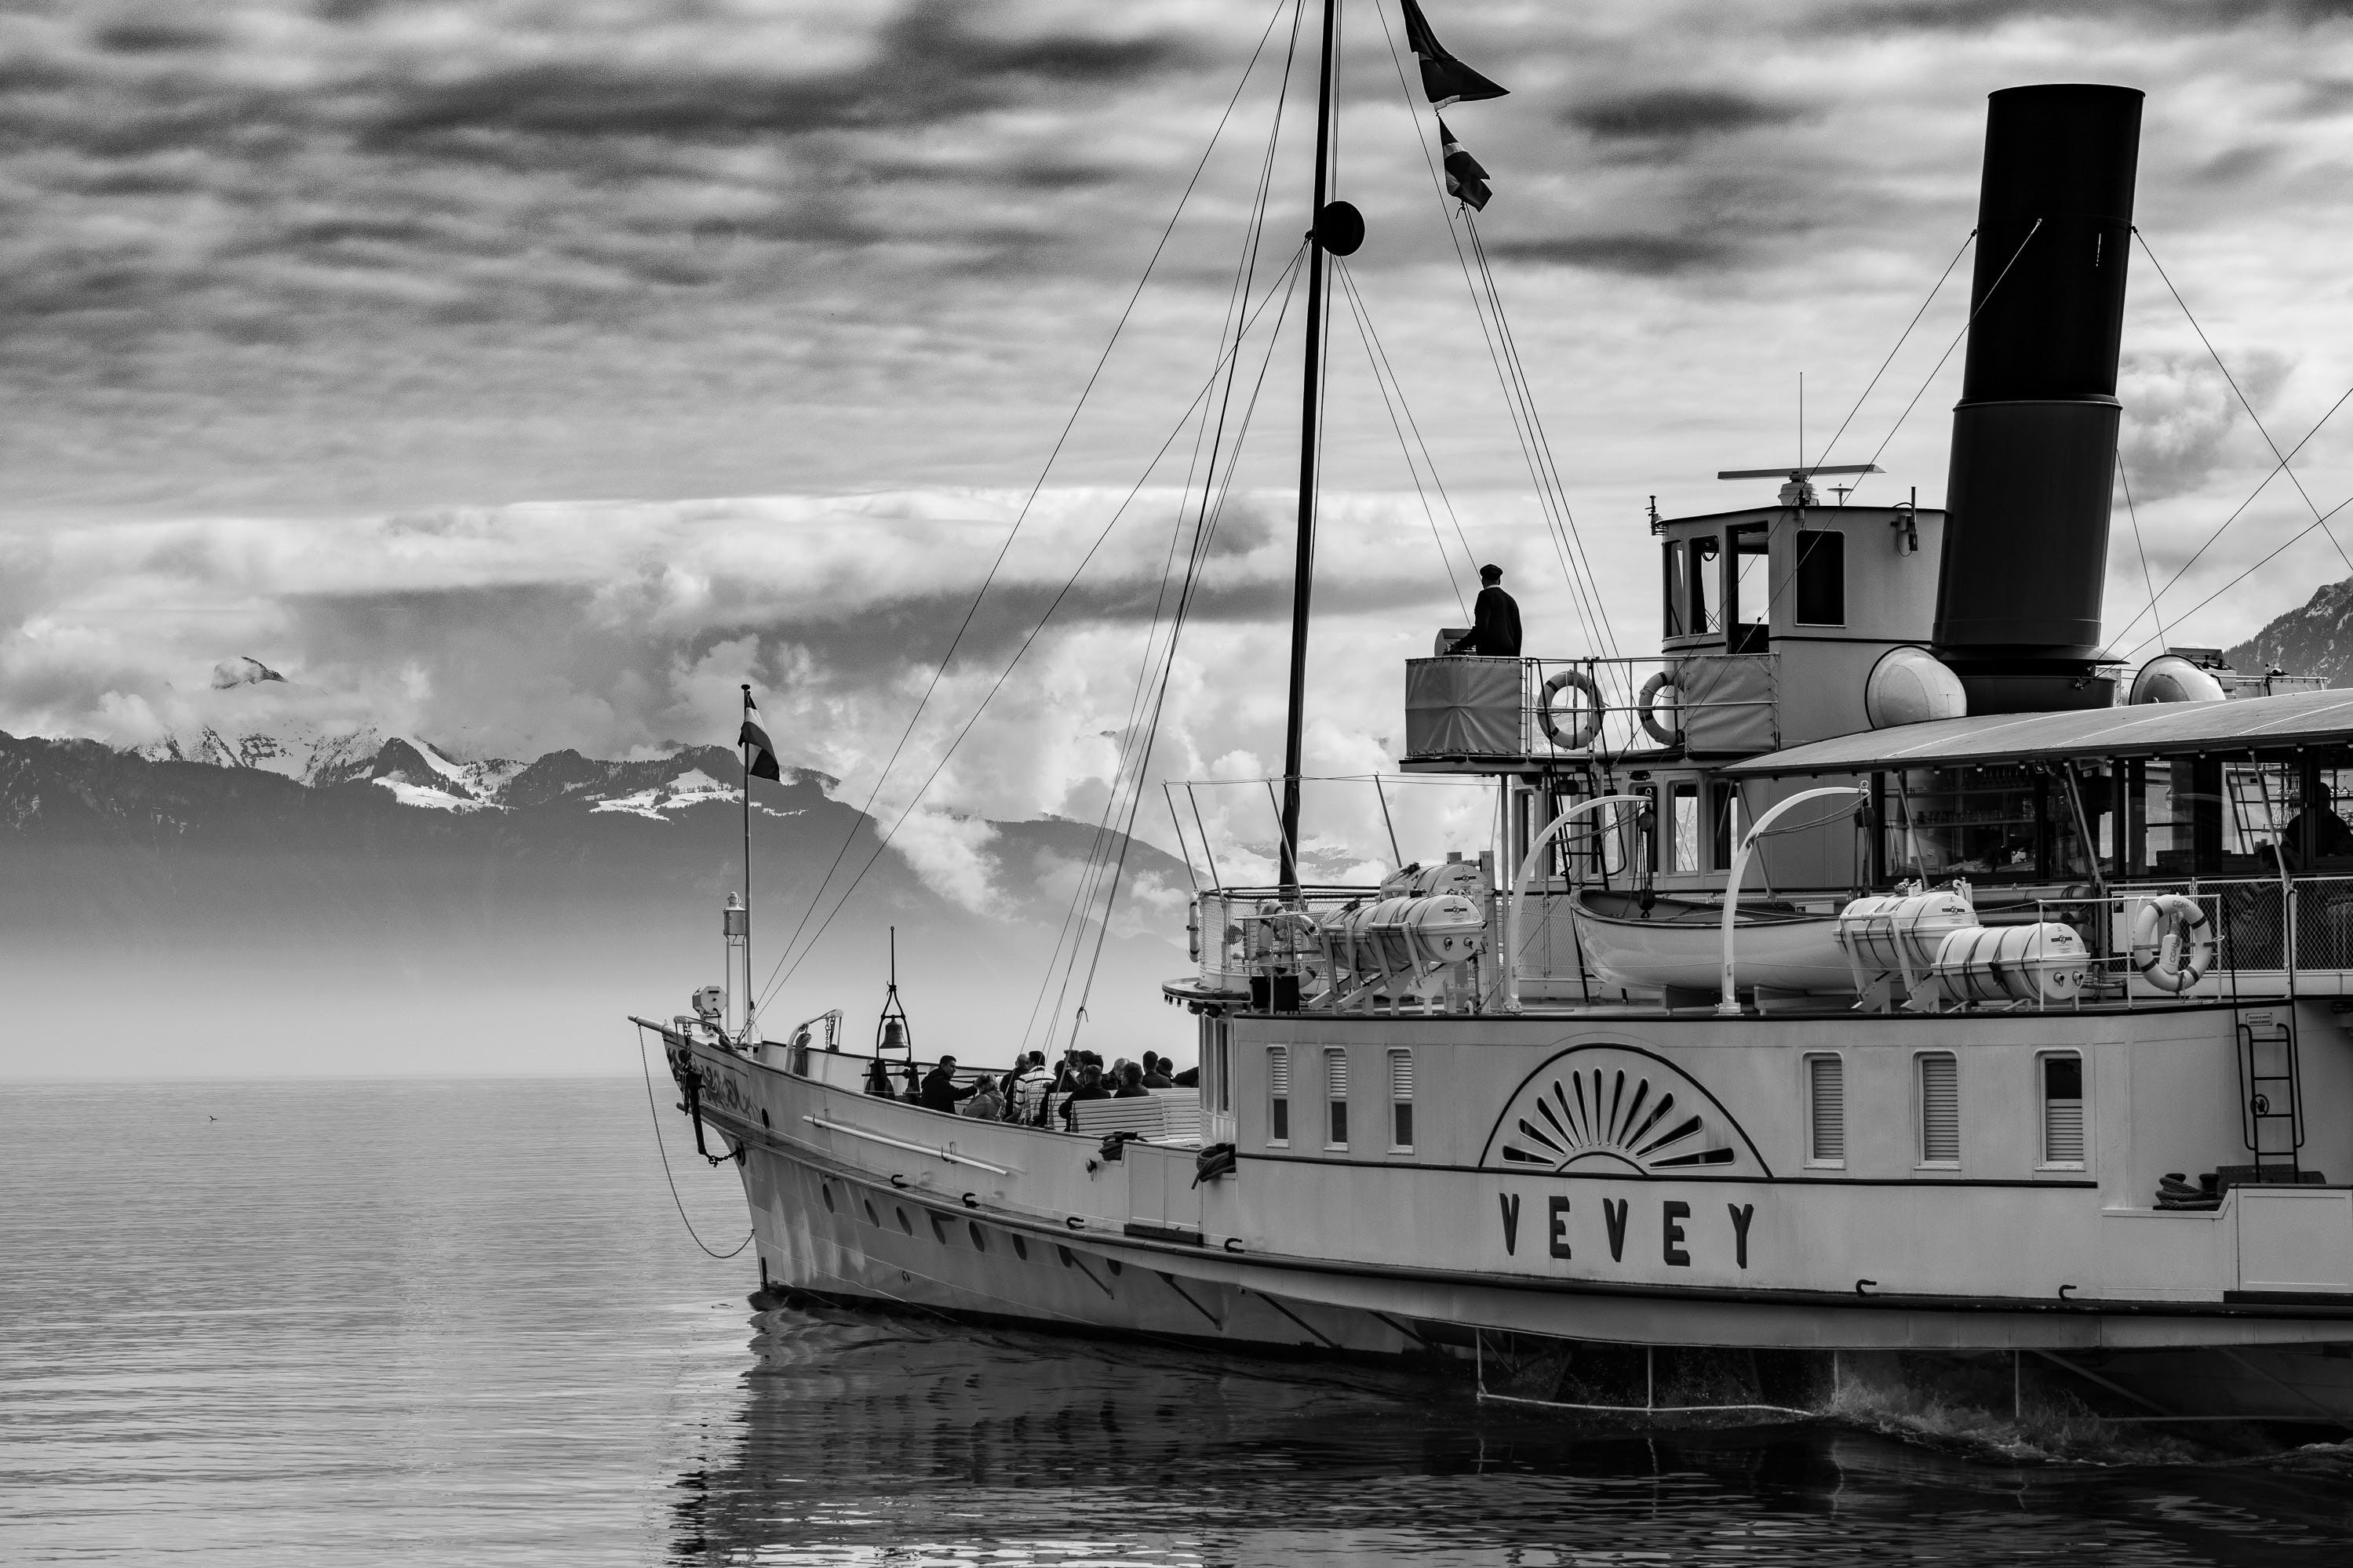 Grayscale Photography of Yevey Sail Boat